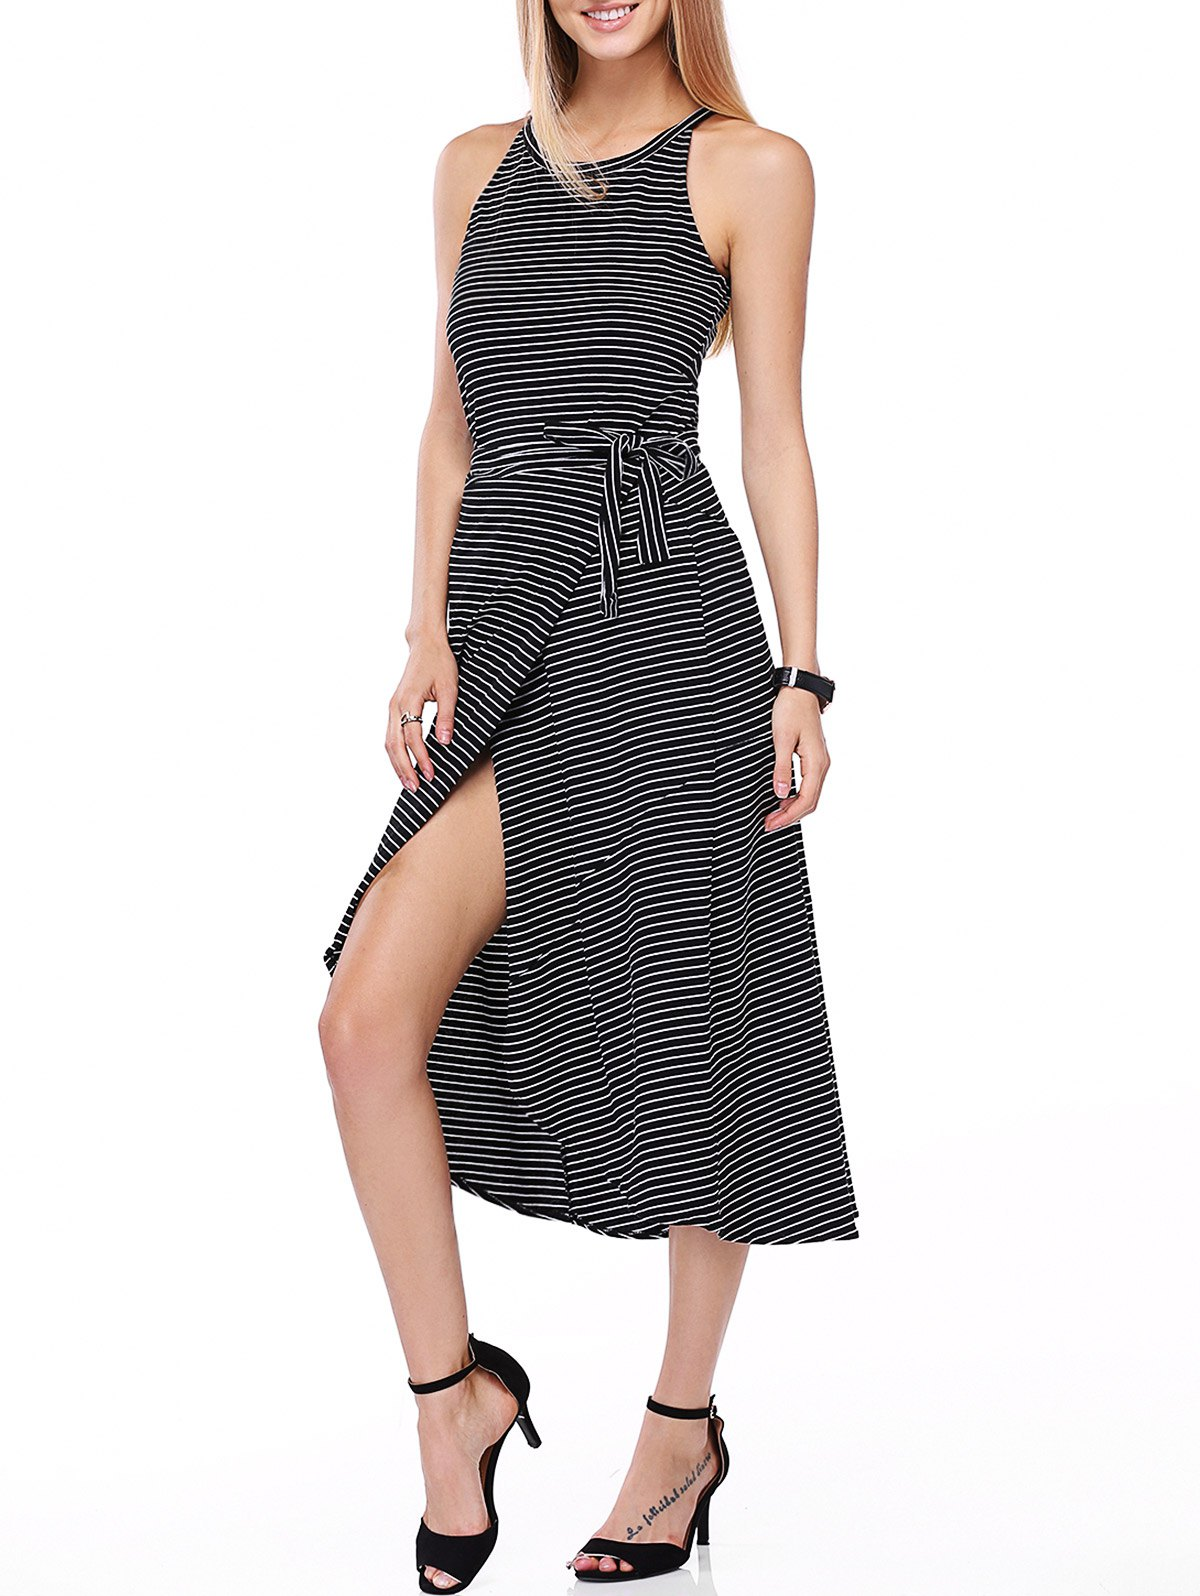 Casual Striped Tank Top + Tie Side High Low Skirt Twinset For Women цена 2017